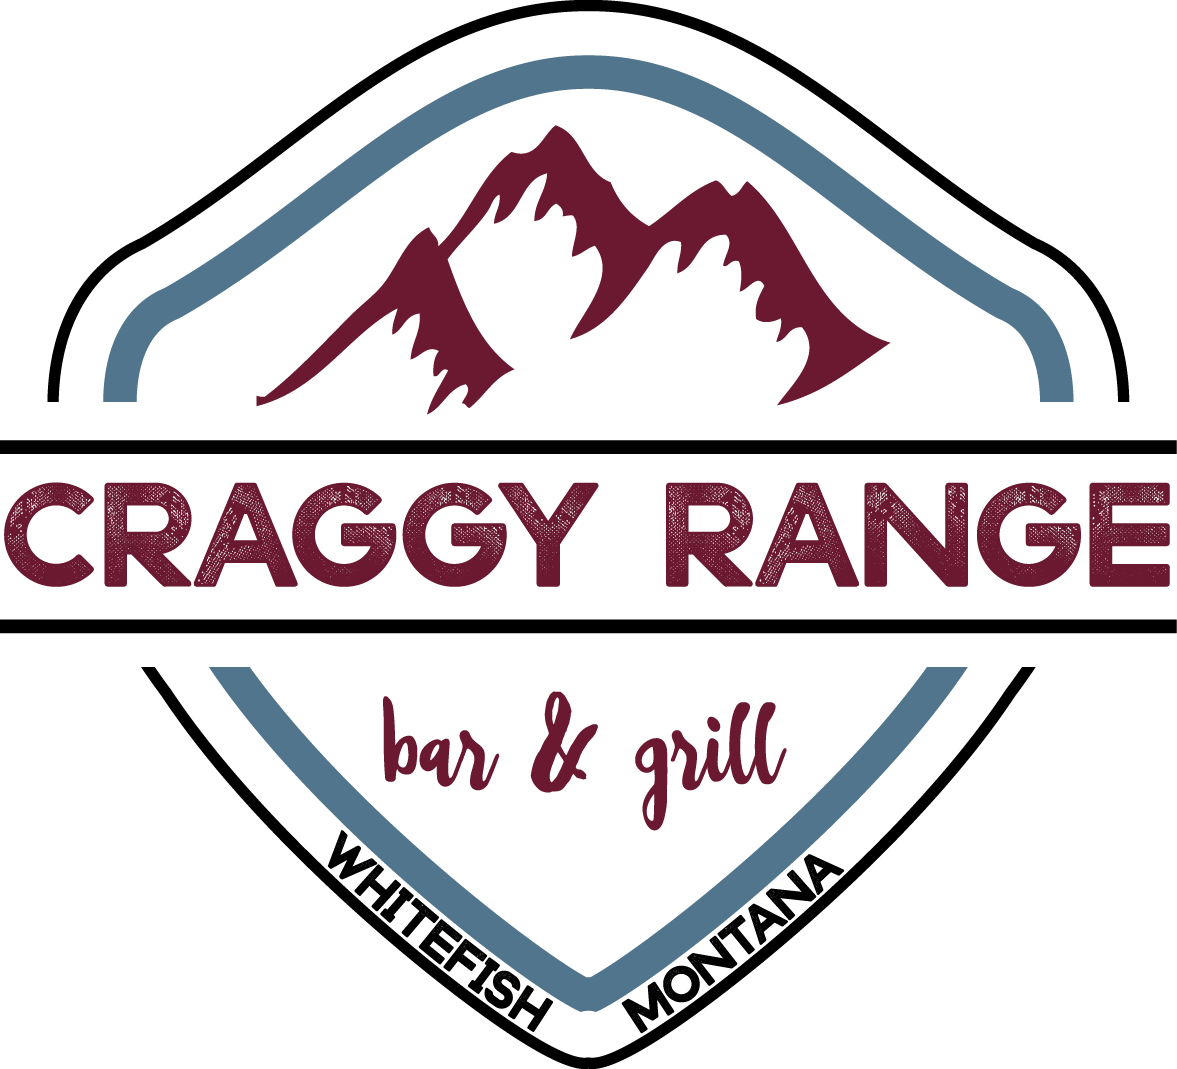 The Craggy Range